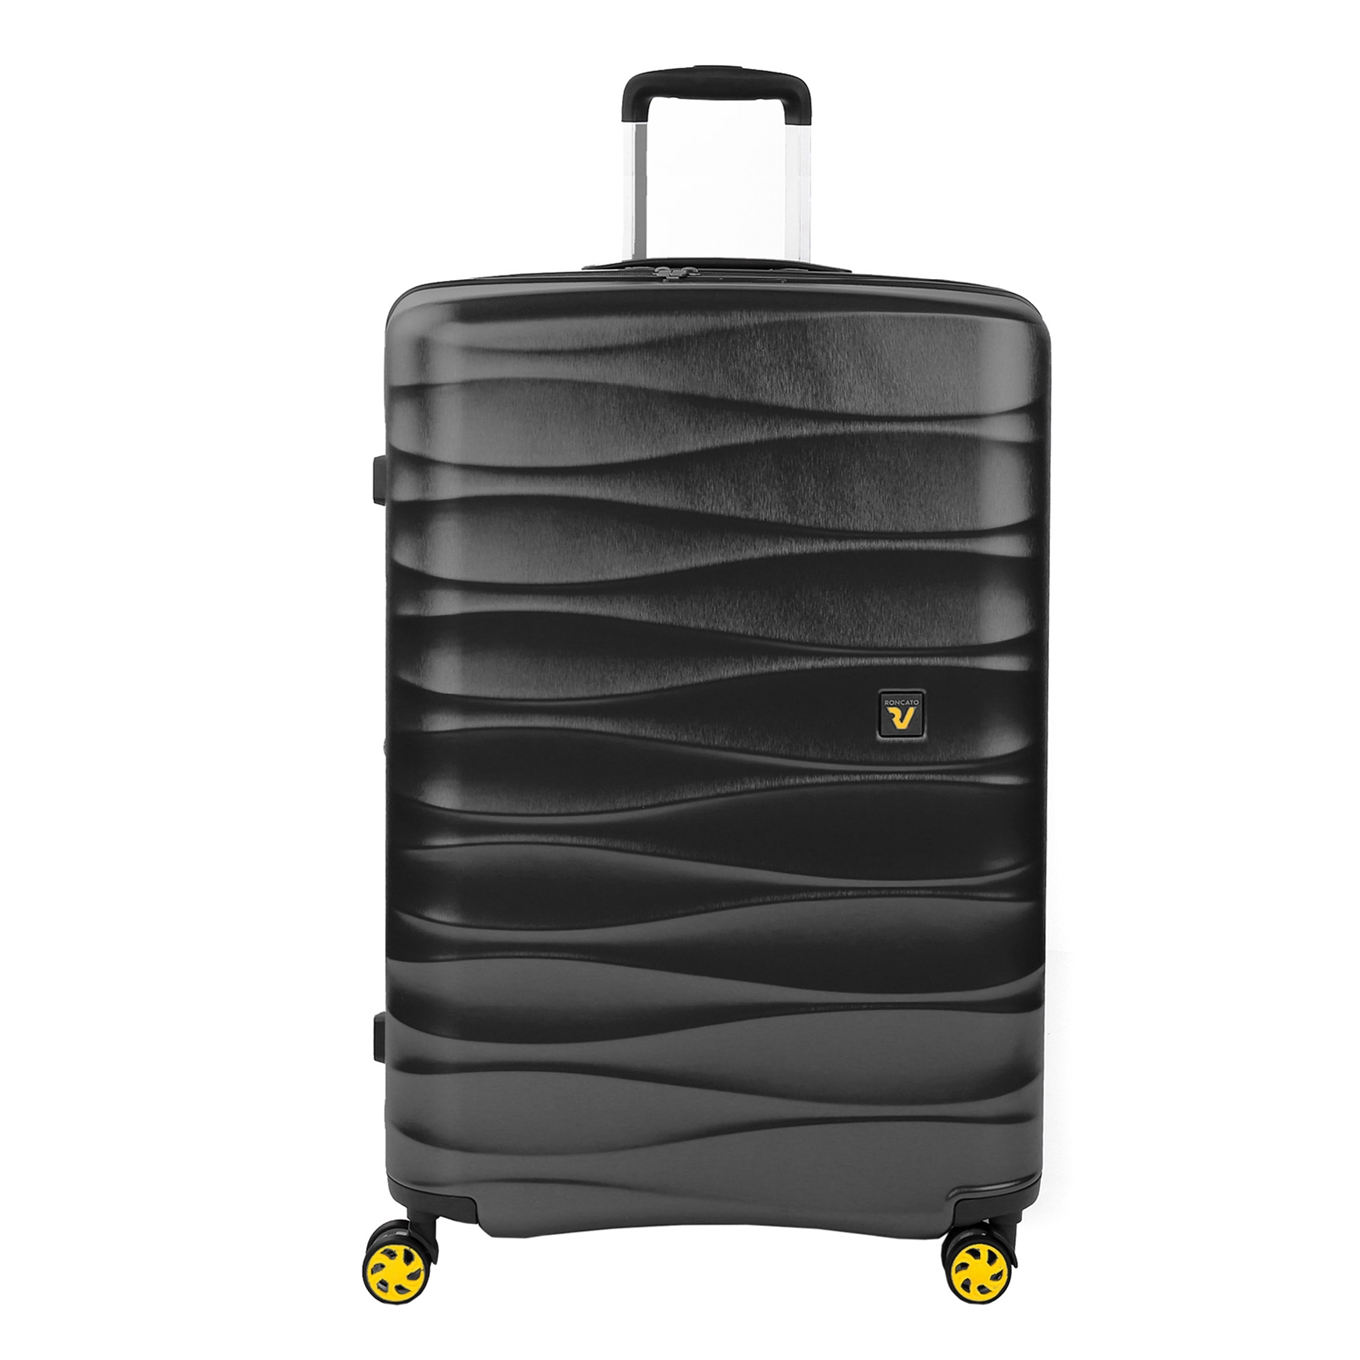 Roncato Stellar 4 Wiel Trolley Large 76 Expandable Antracite